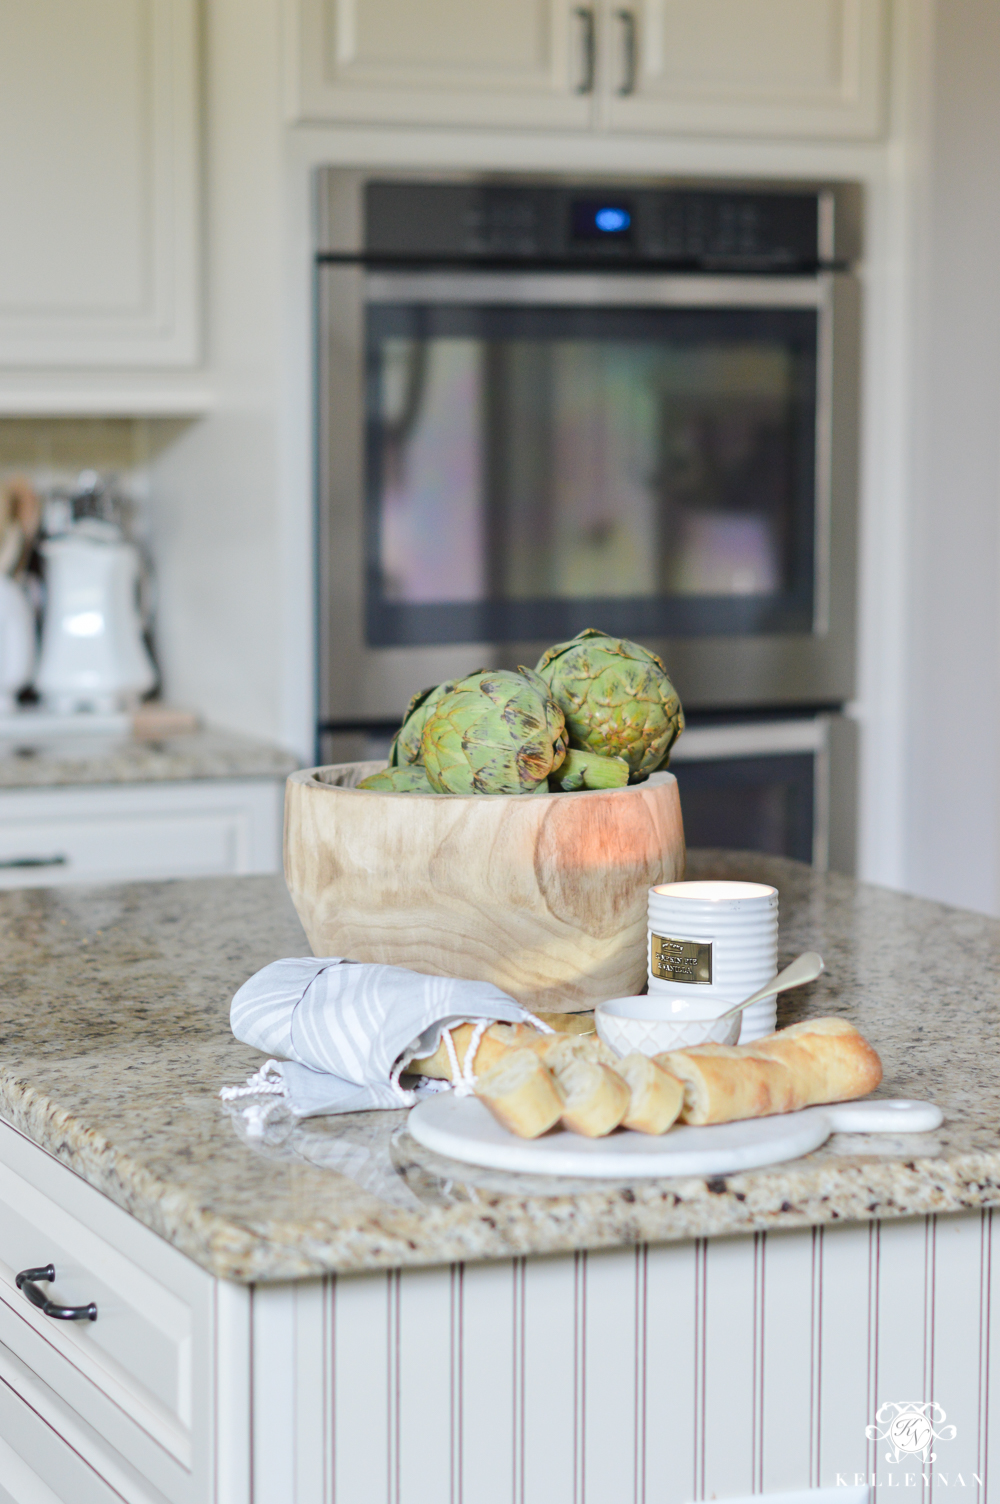 2017 Fall Home Tour with Yellow and Orange Leaves- kitchen with artichokes